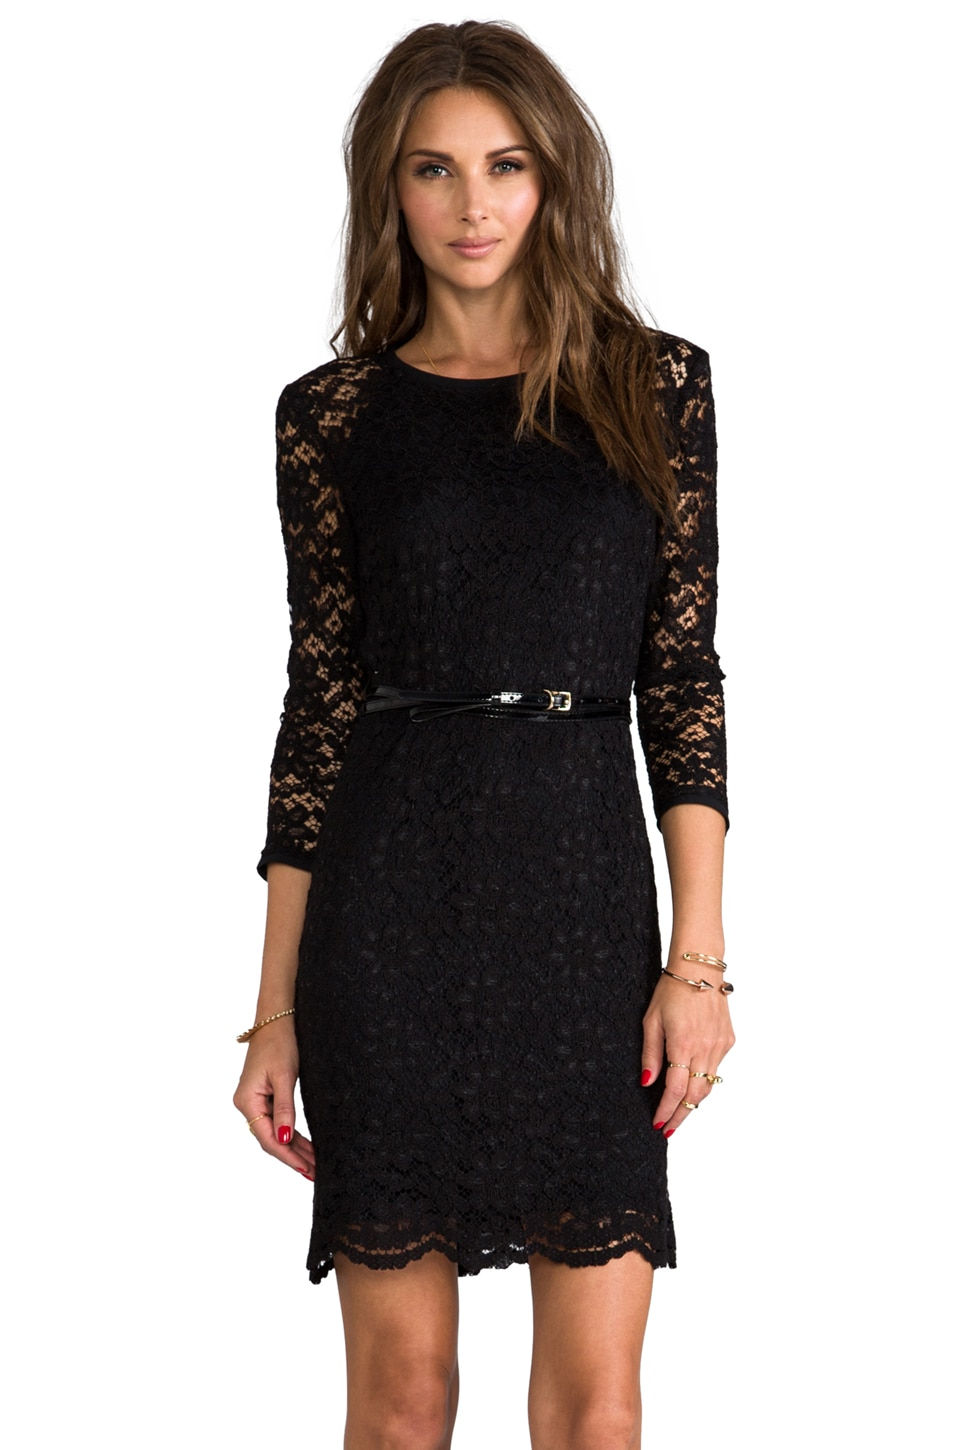 Juicy Couture Paige Dress in Pitch Black